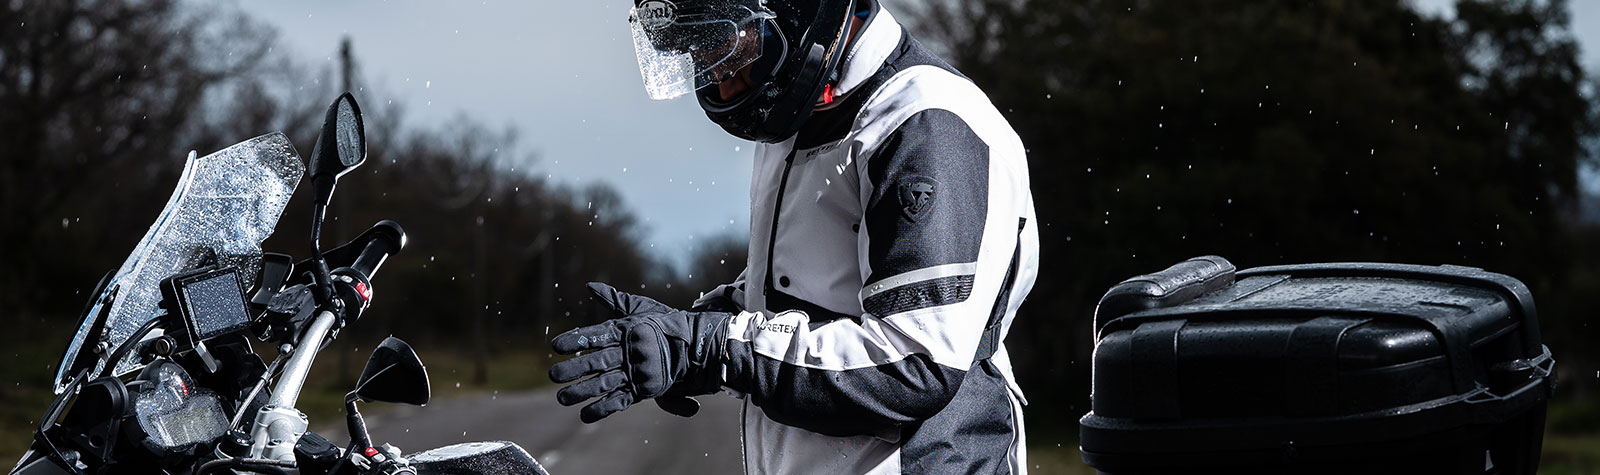 Five Gloves Moto Collection